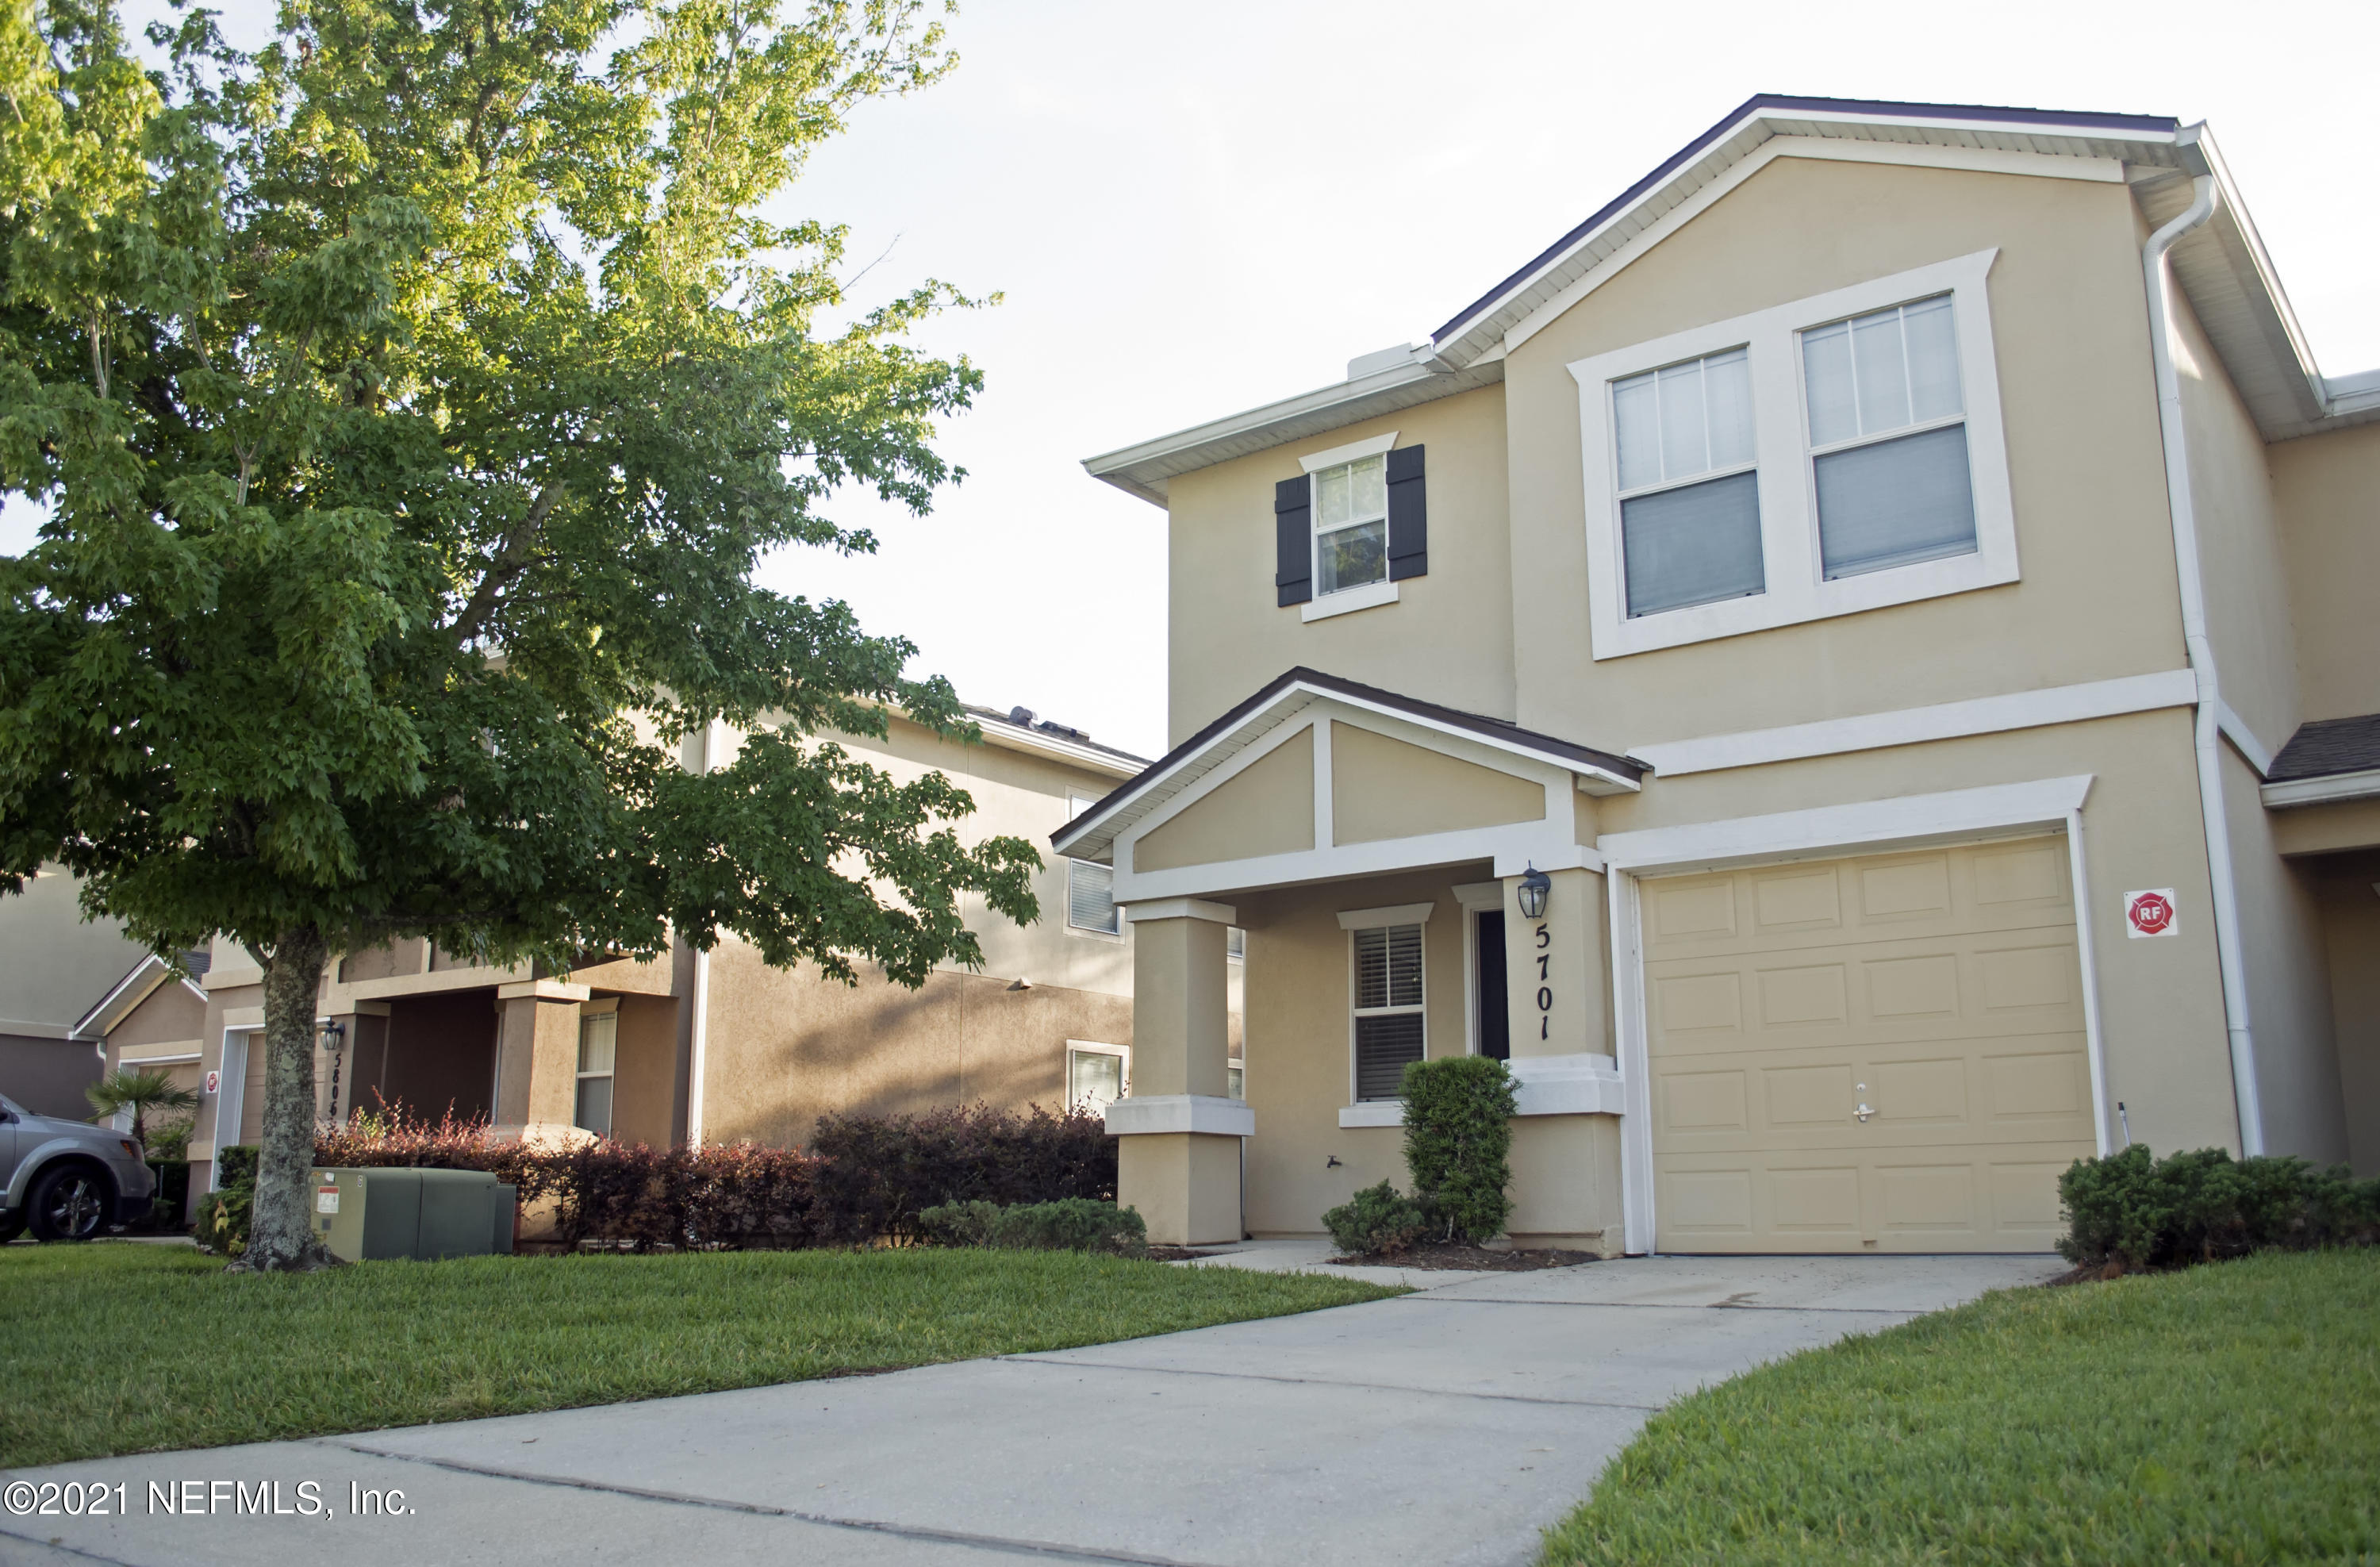 1500 CALMING WATER, FLEMING ISLAND, FLORIDA 32003, 3 Bedrooms Bedrooms, ,Residential,For sale,CALMING WATER,1108457